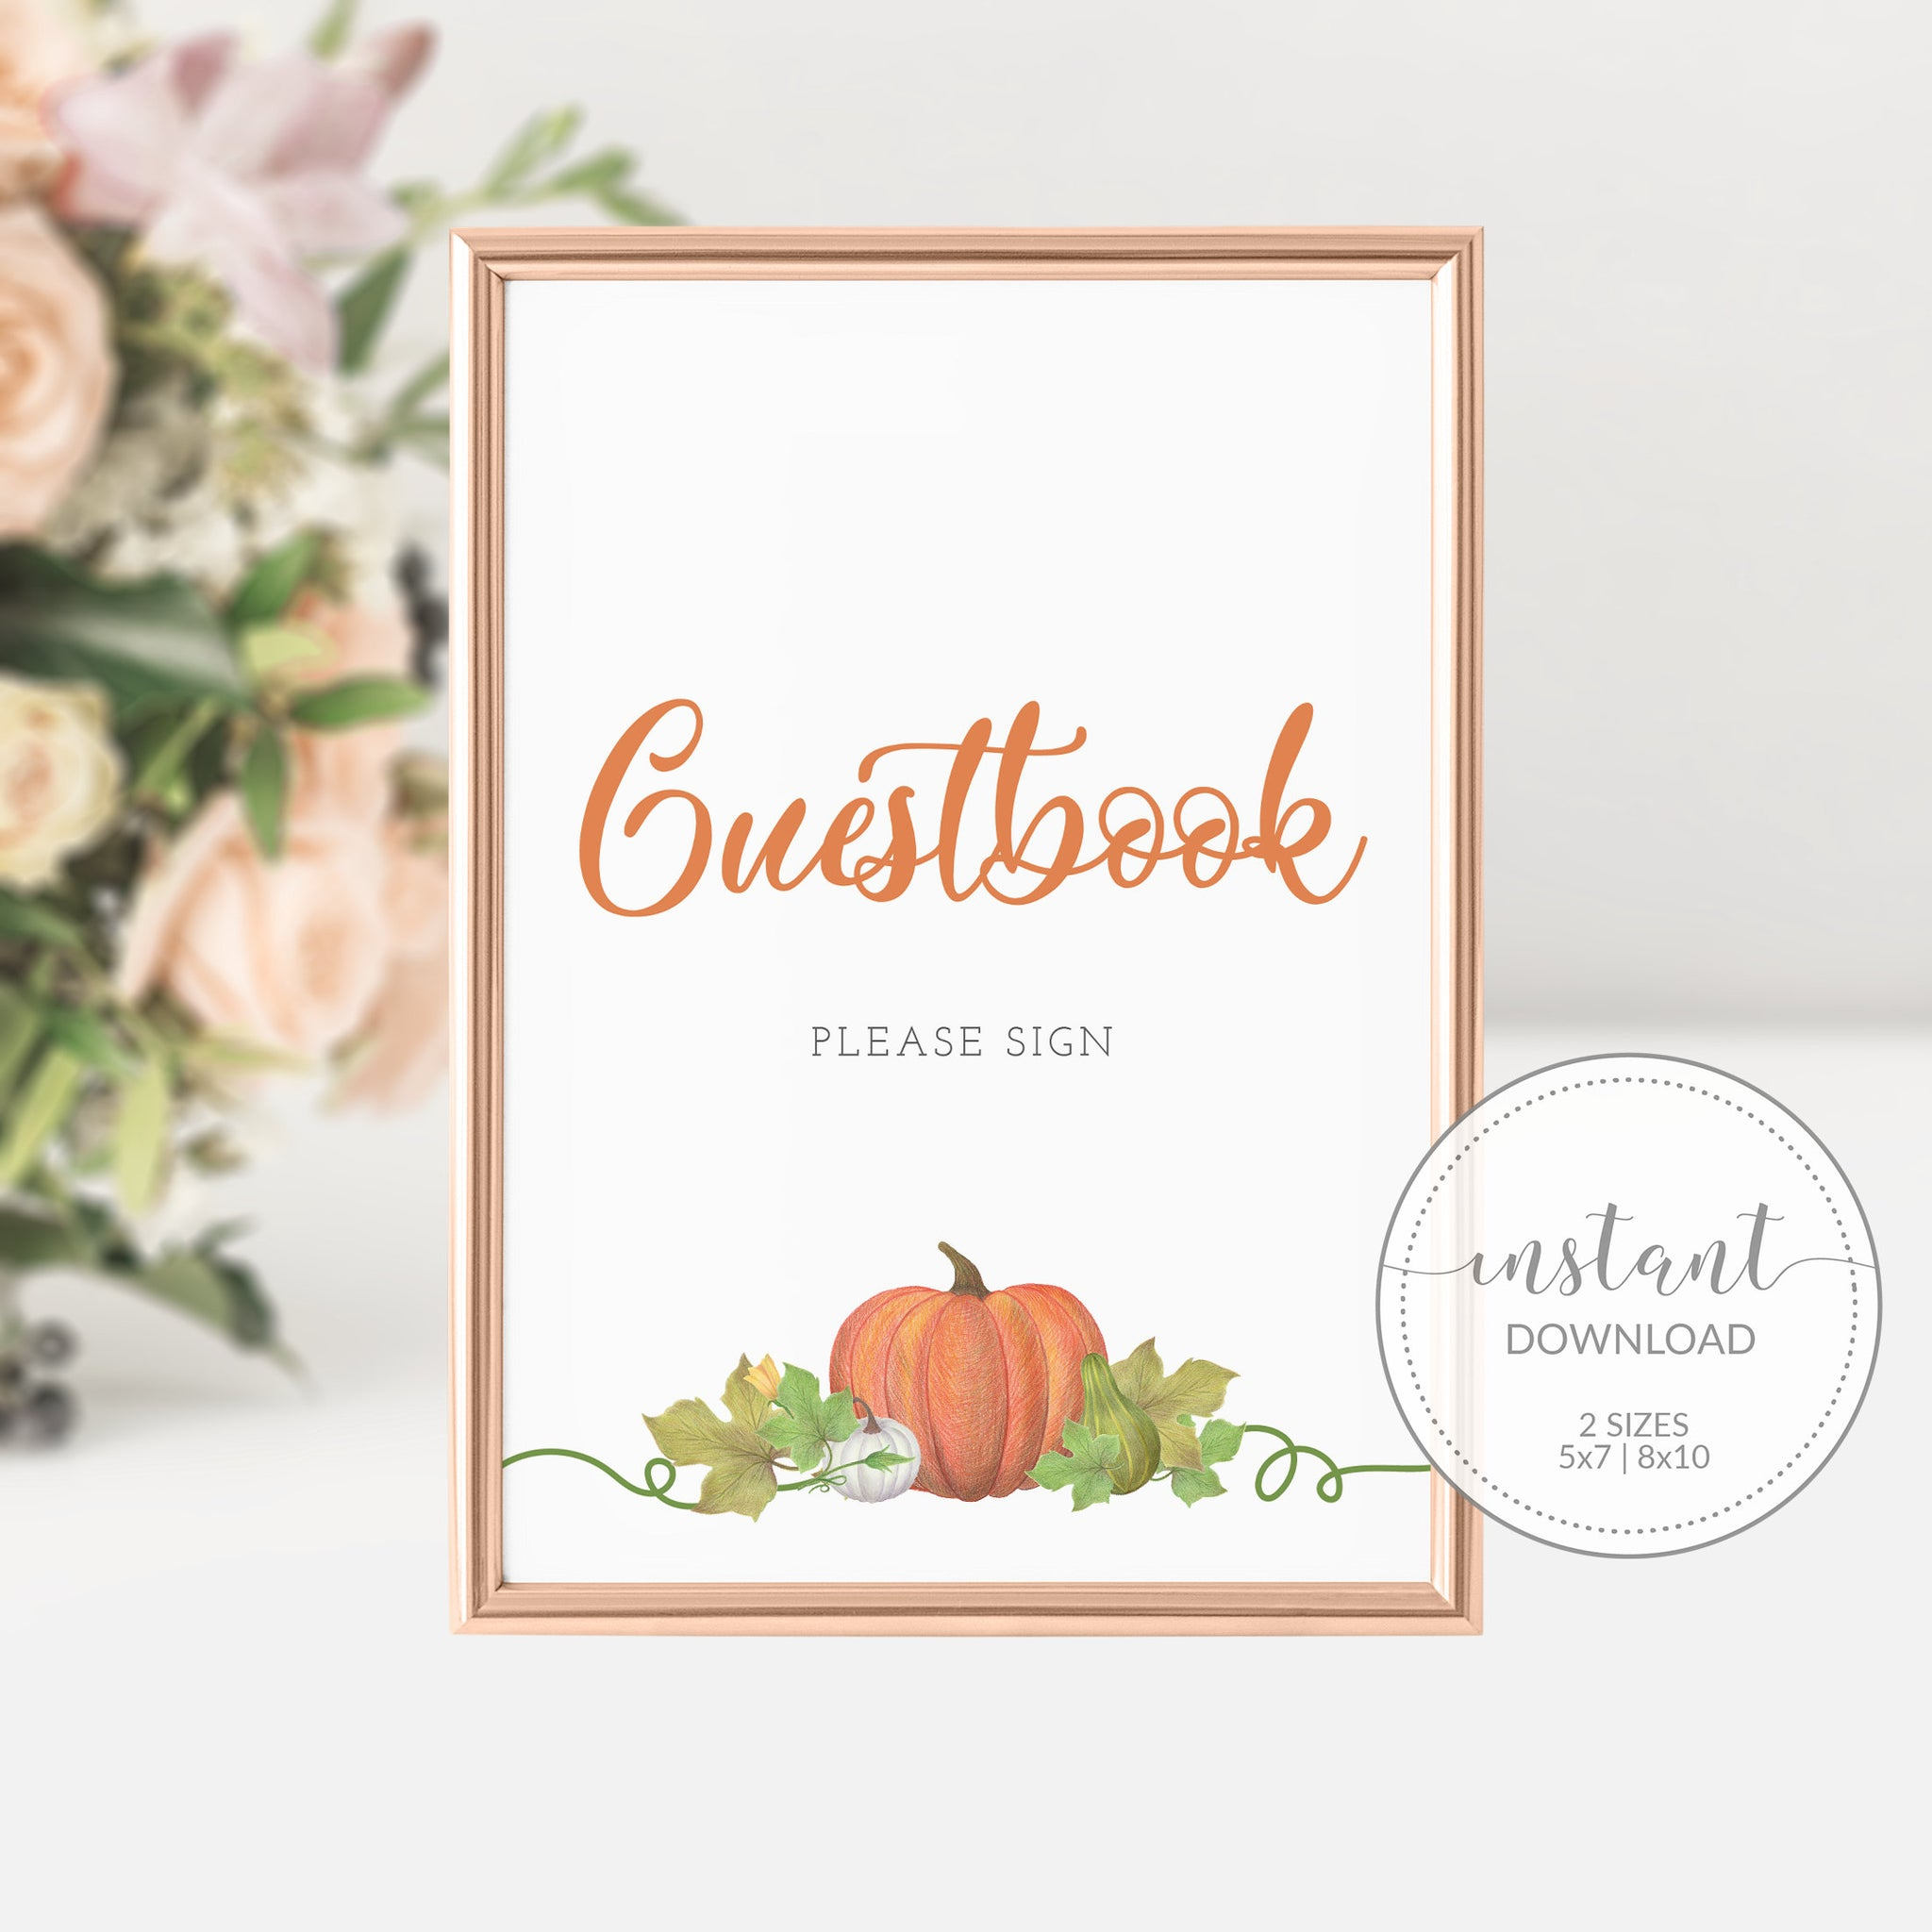 Pumpkin Baby Shower Guestbook Sign Printable INSTANT DOWNLOAD, Pumpkin Birthday Party Sign, Pumpkin Baby Shower Decorations Supplies - HP100 - @PlumPolkaDot